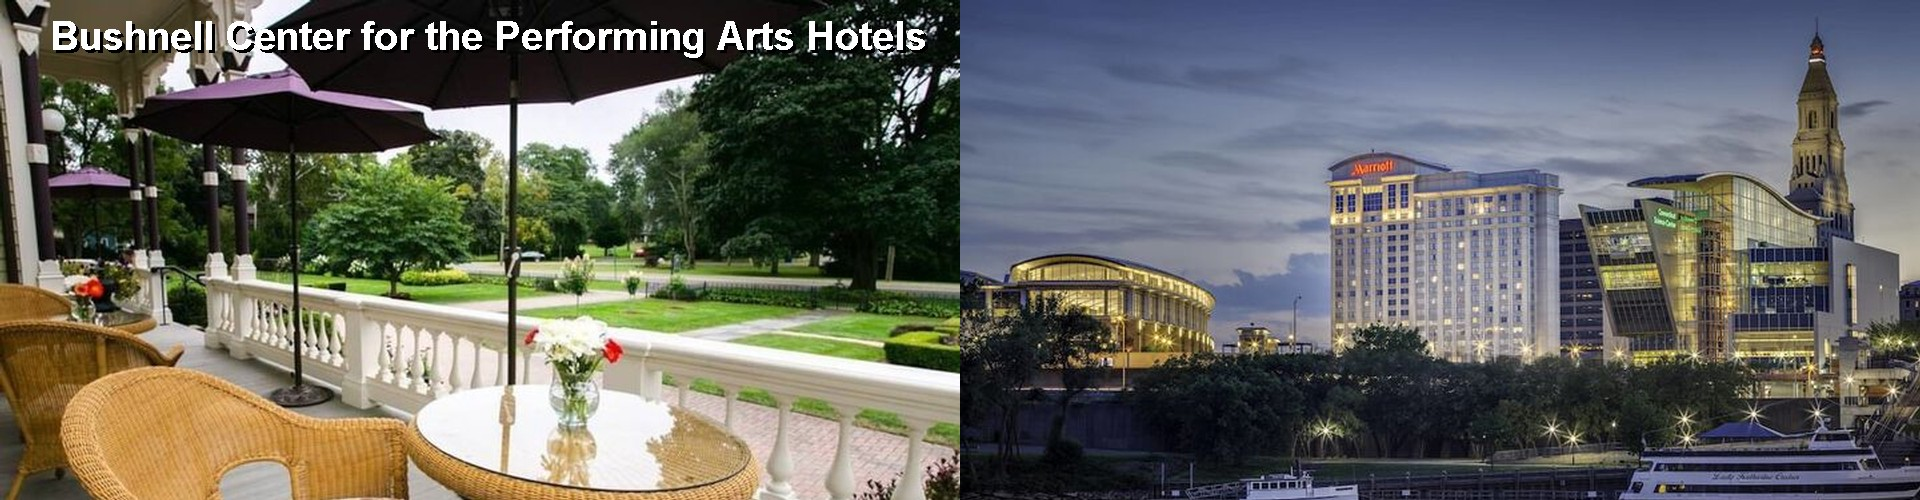 5 Best Hotels near Bushnell Center for the Performing Arts